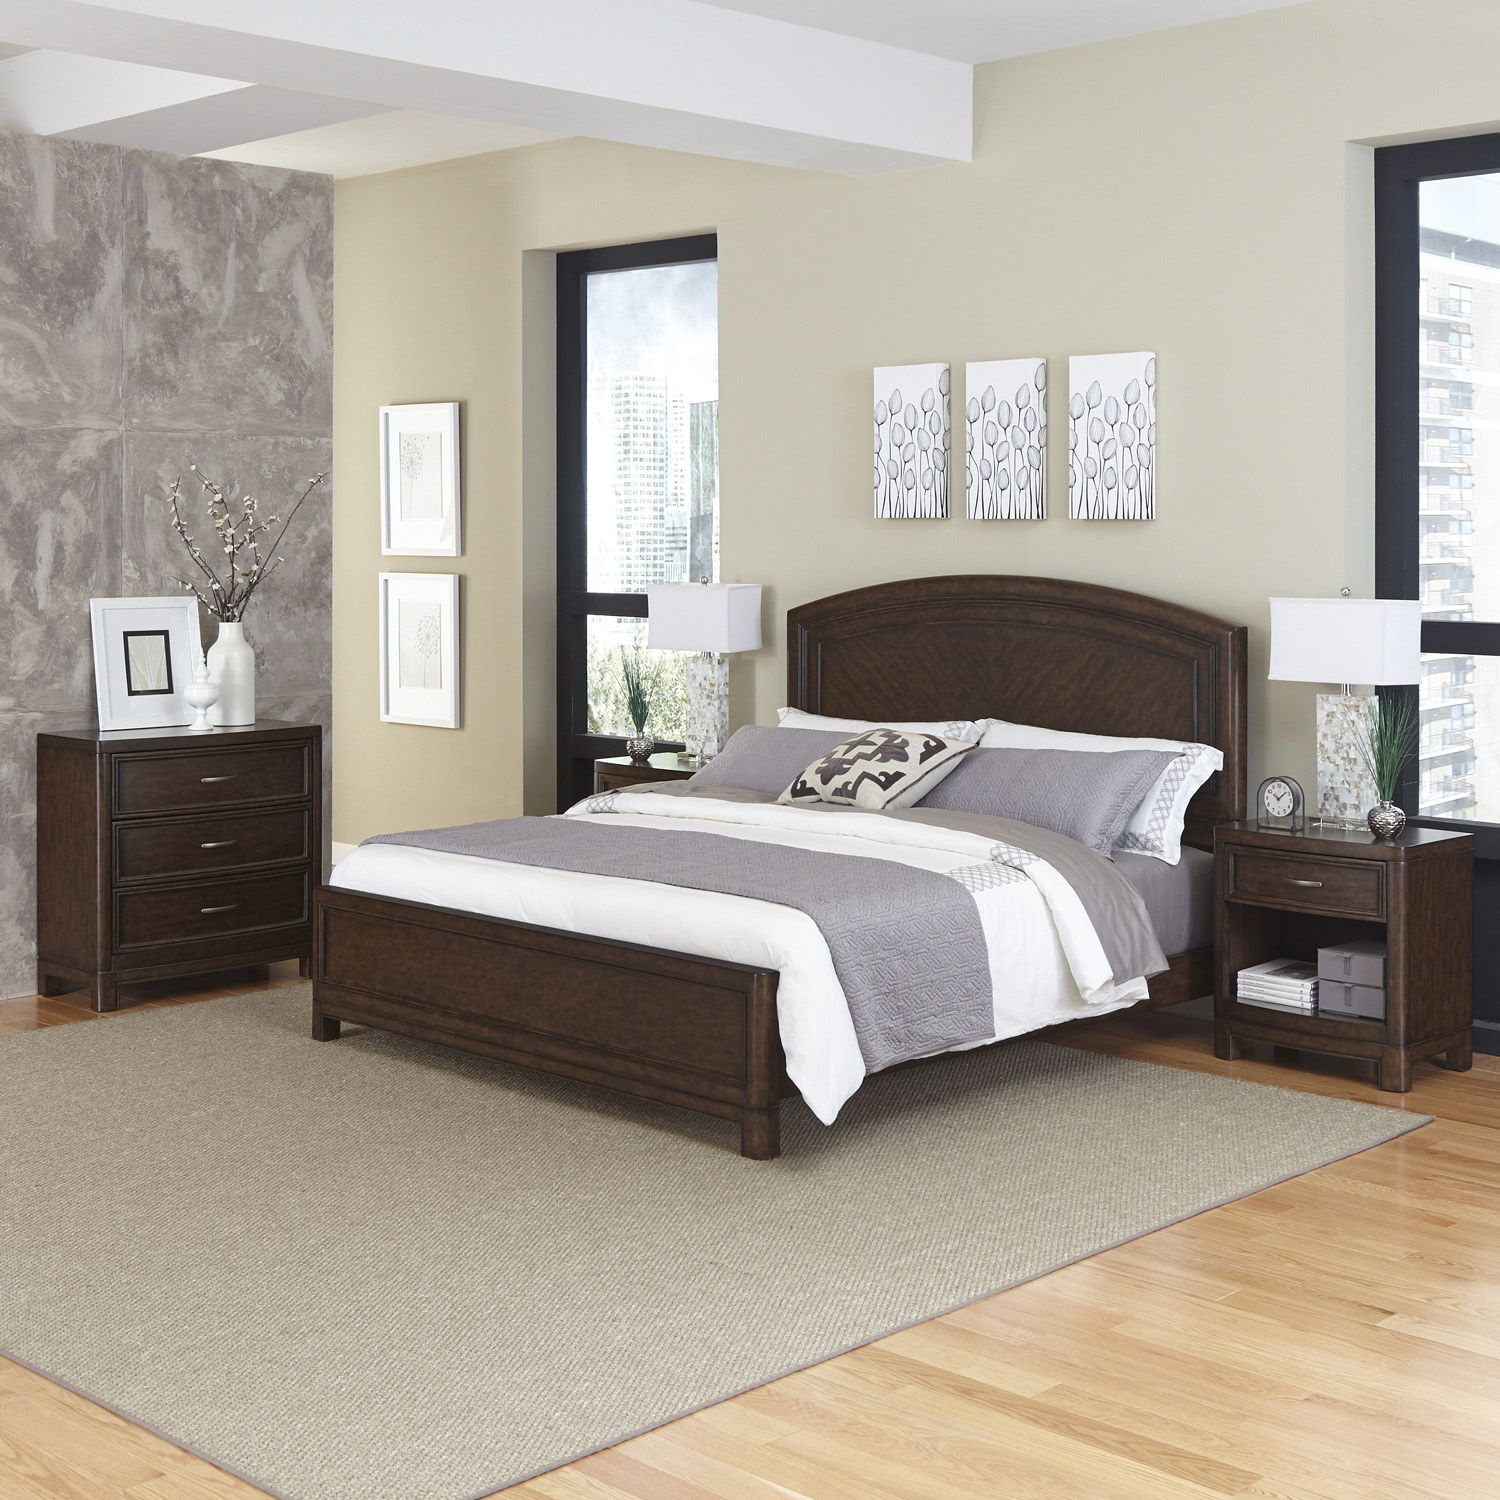 New Home Styles Crescent Hill piece Bed Two Nightstands and Drawer Set